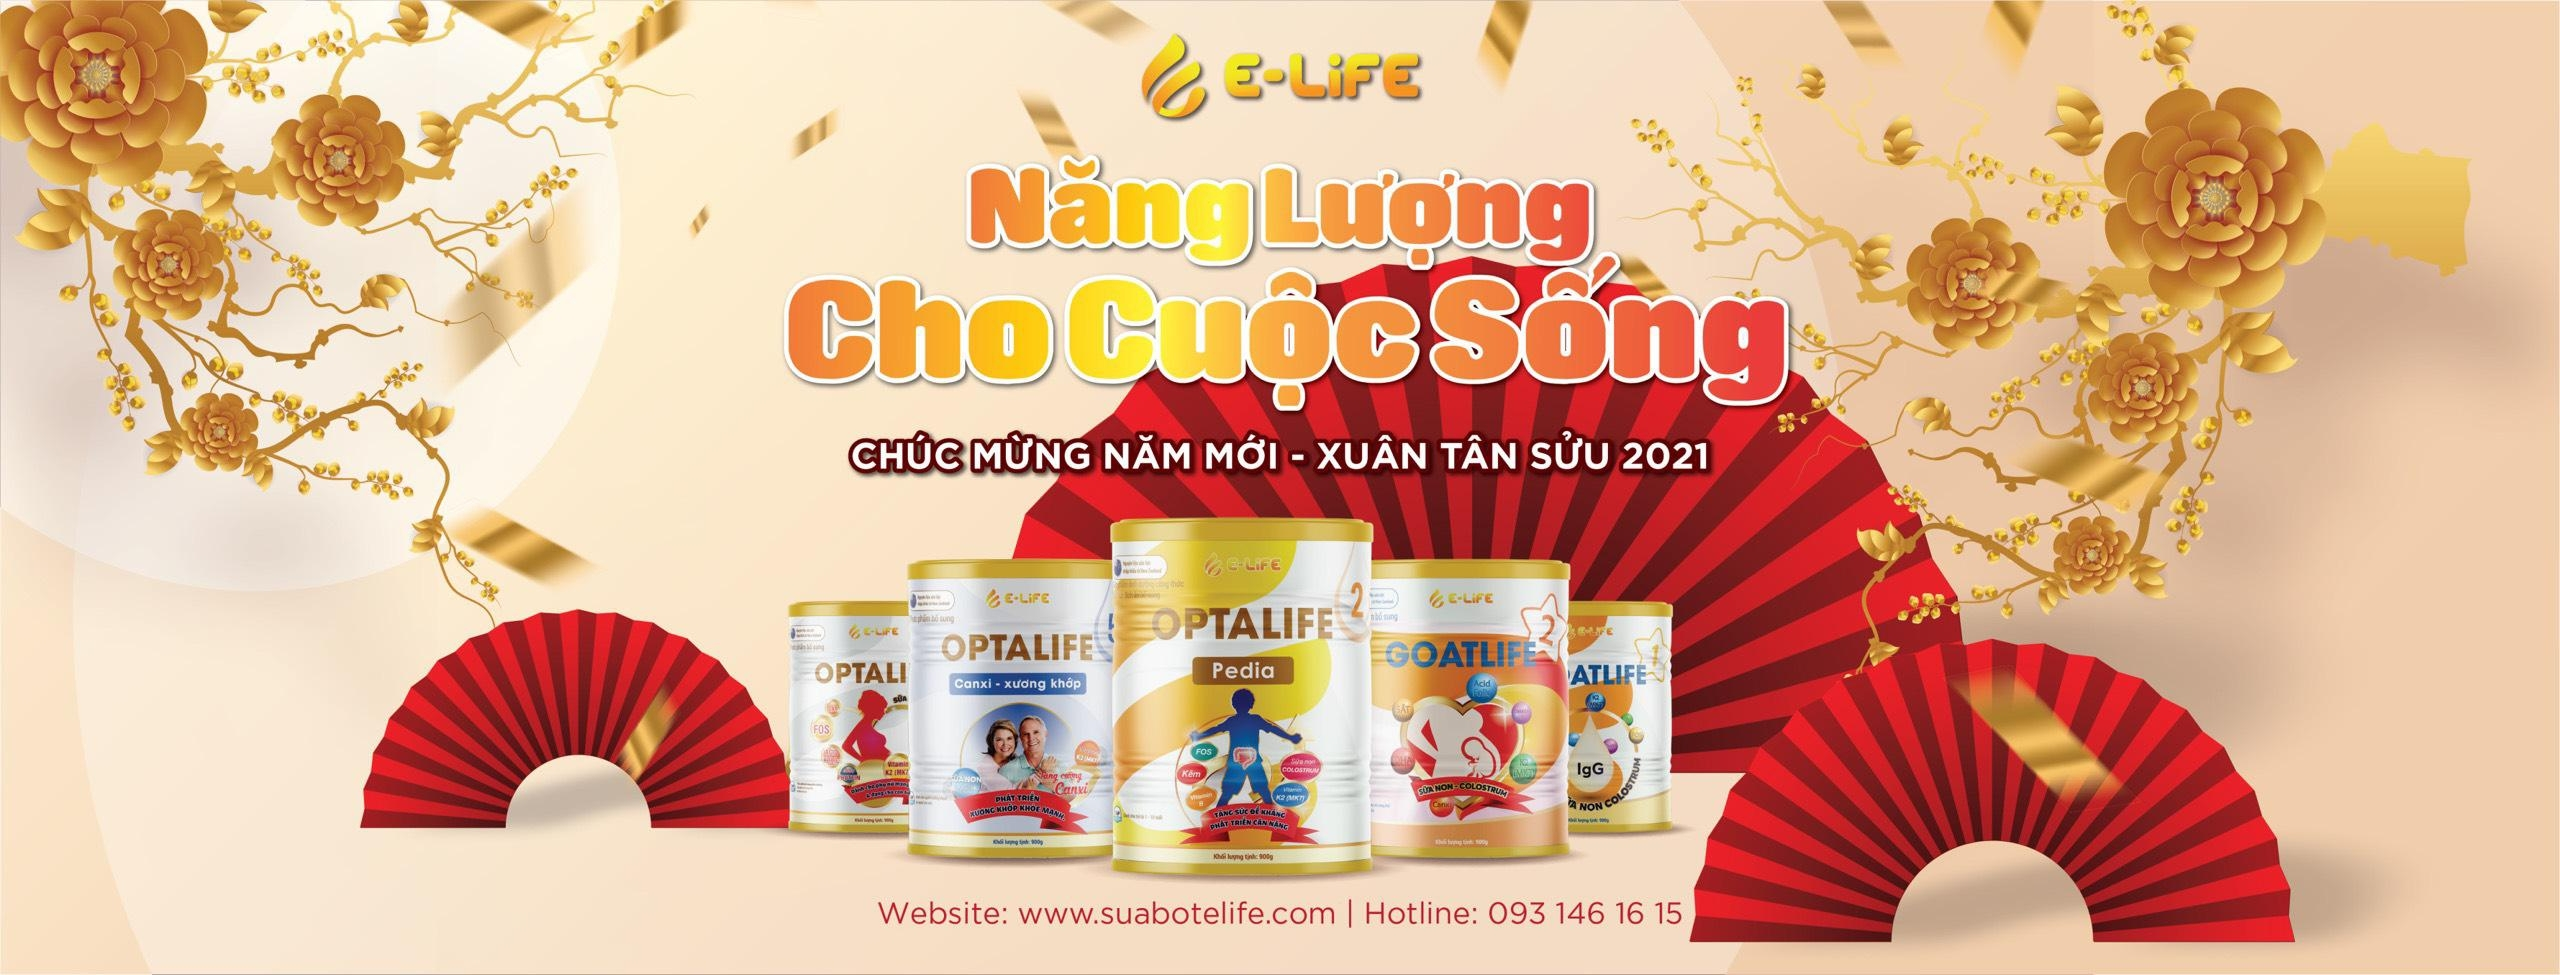 Công Ty TNHH Sữa Quốc Tế Elife (@suaquocteelife) Cover Image